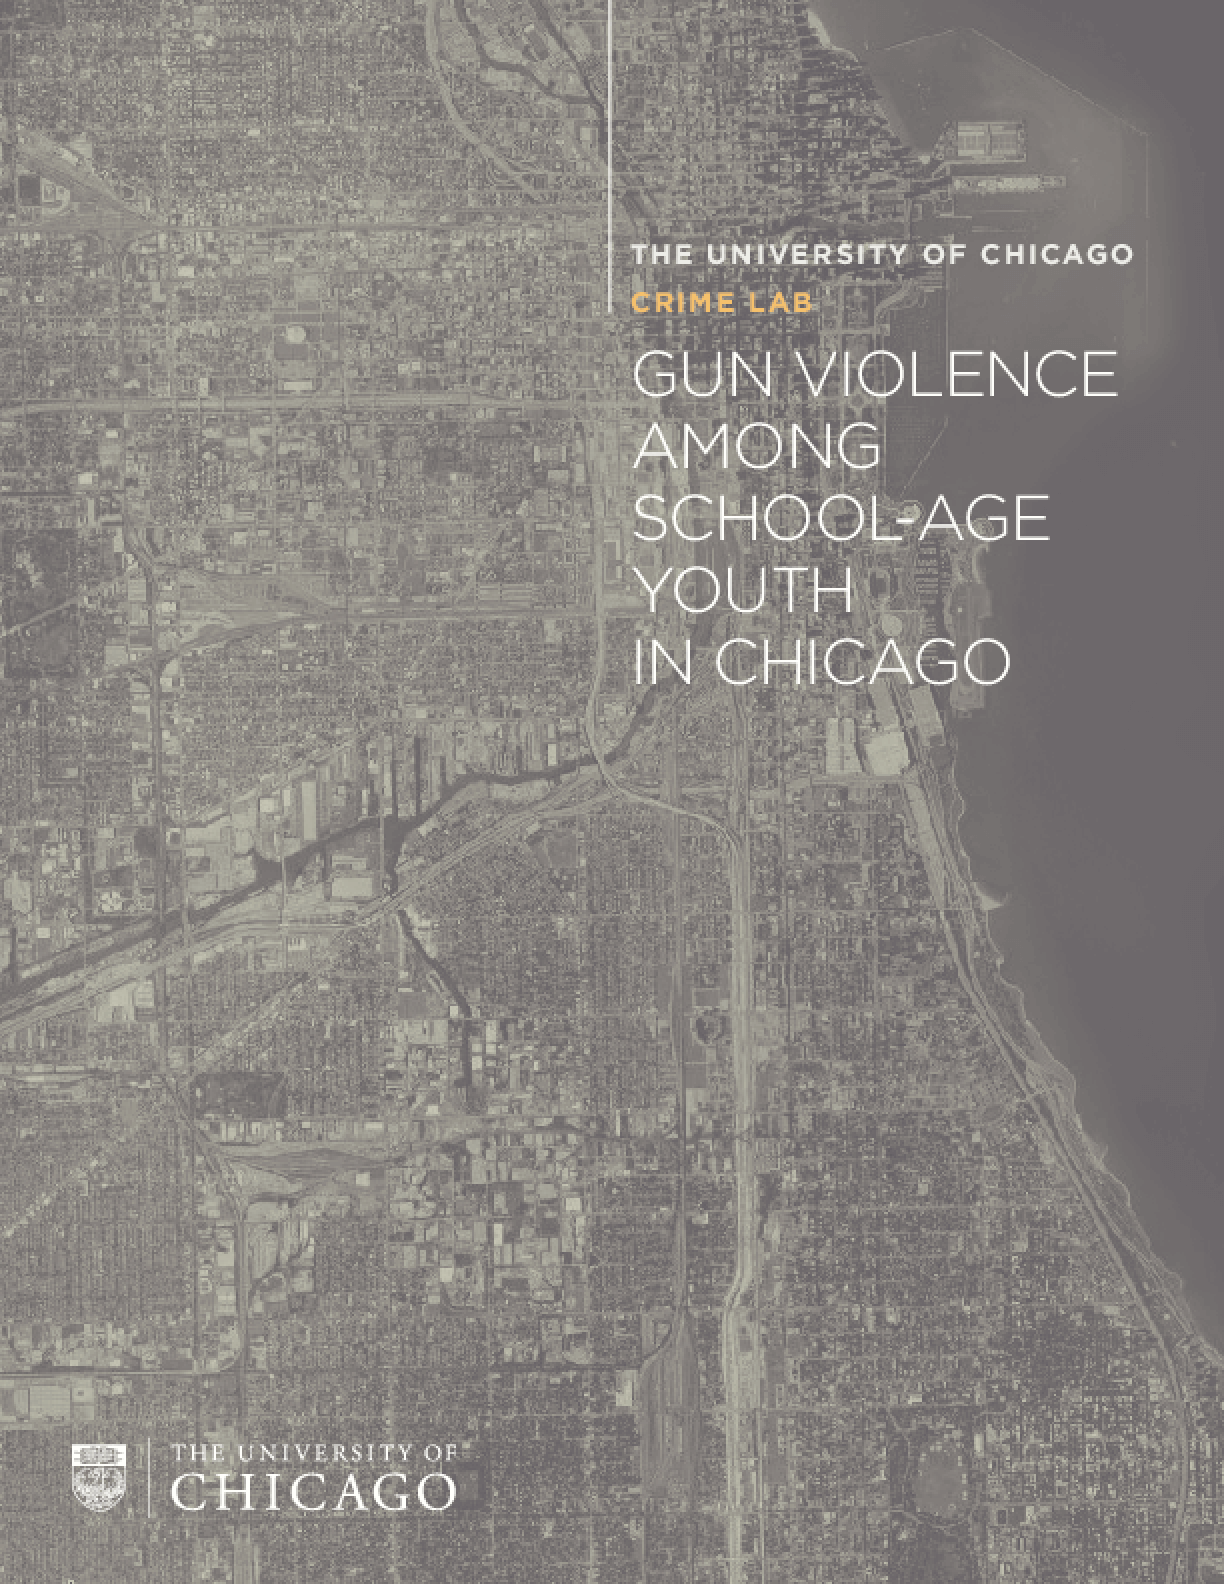 Gun Violence Among School-Age Youth in Chicago